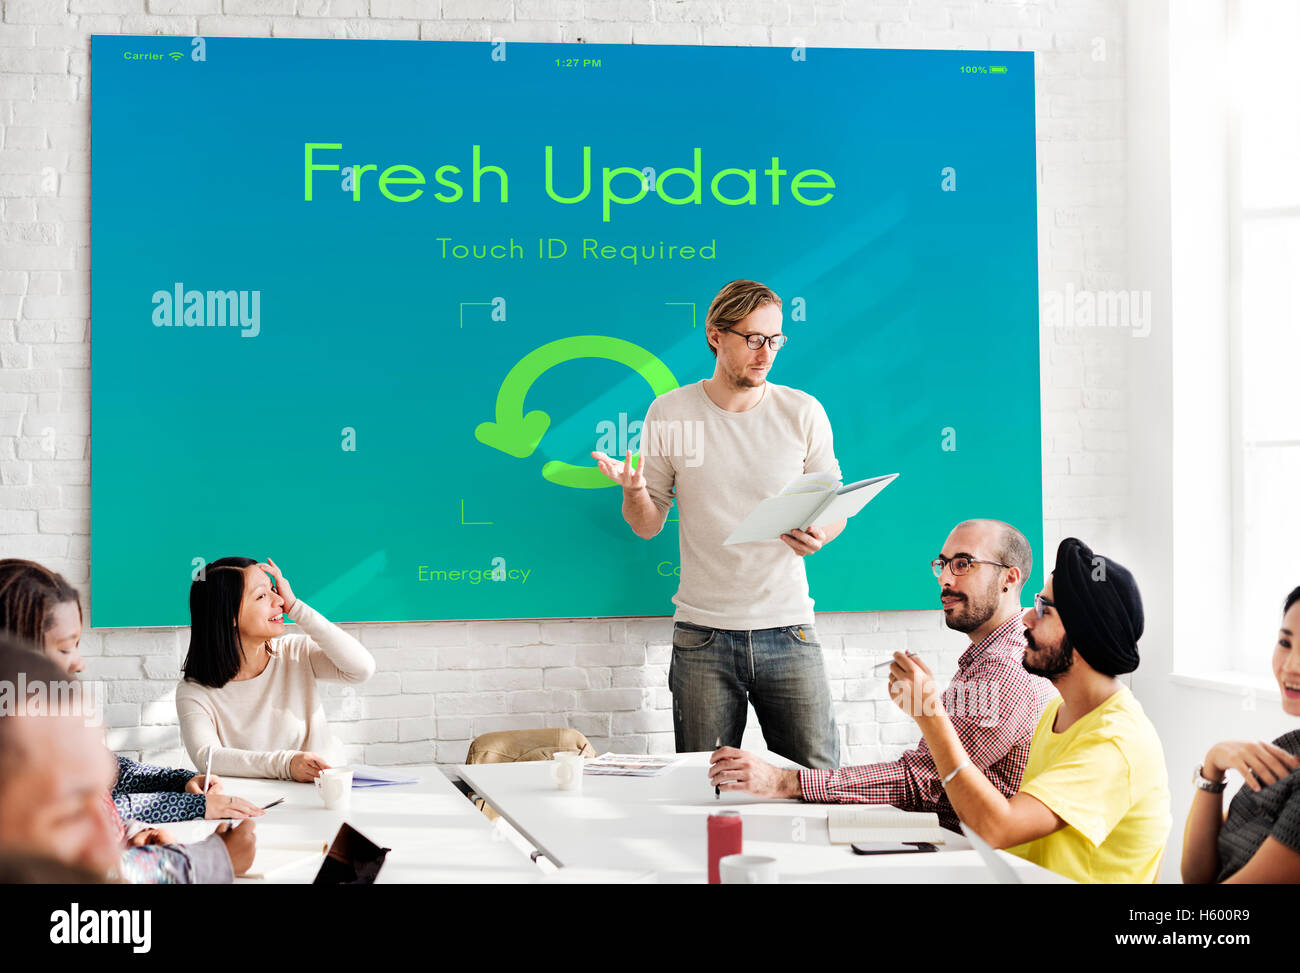 Fresh Update Upgrade New Version Concept - Stock Image